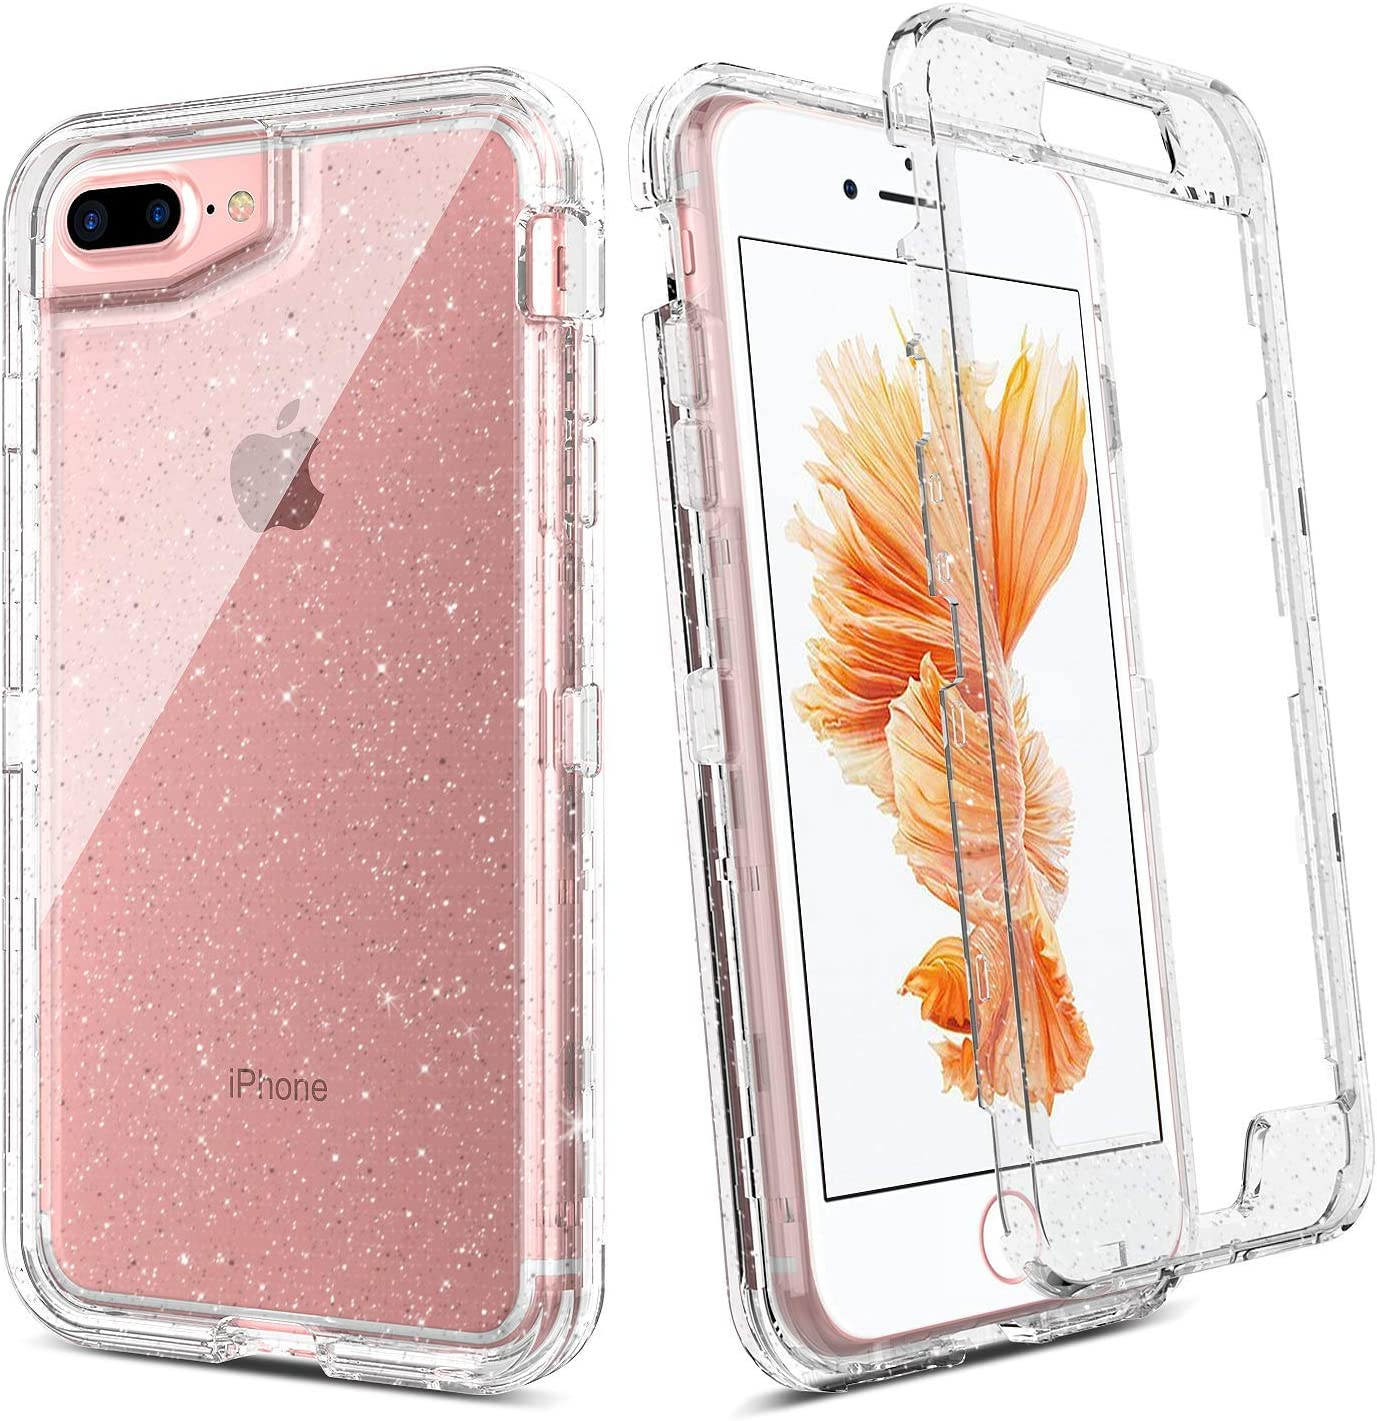 BENTOBEN iPhone 8 Plus Case, iPhone 7 Plus Case, iPhone 6s Plus Case, iPhone 6 Plus Case, Transparent Clear Heavy Duty Rugged Full Body Shockproof Protective Phone Cover, Silver Glitter Crystal Clear